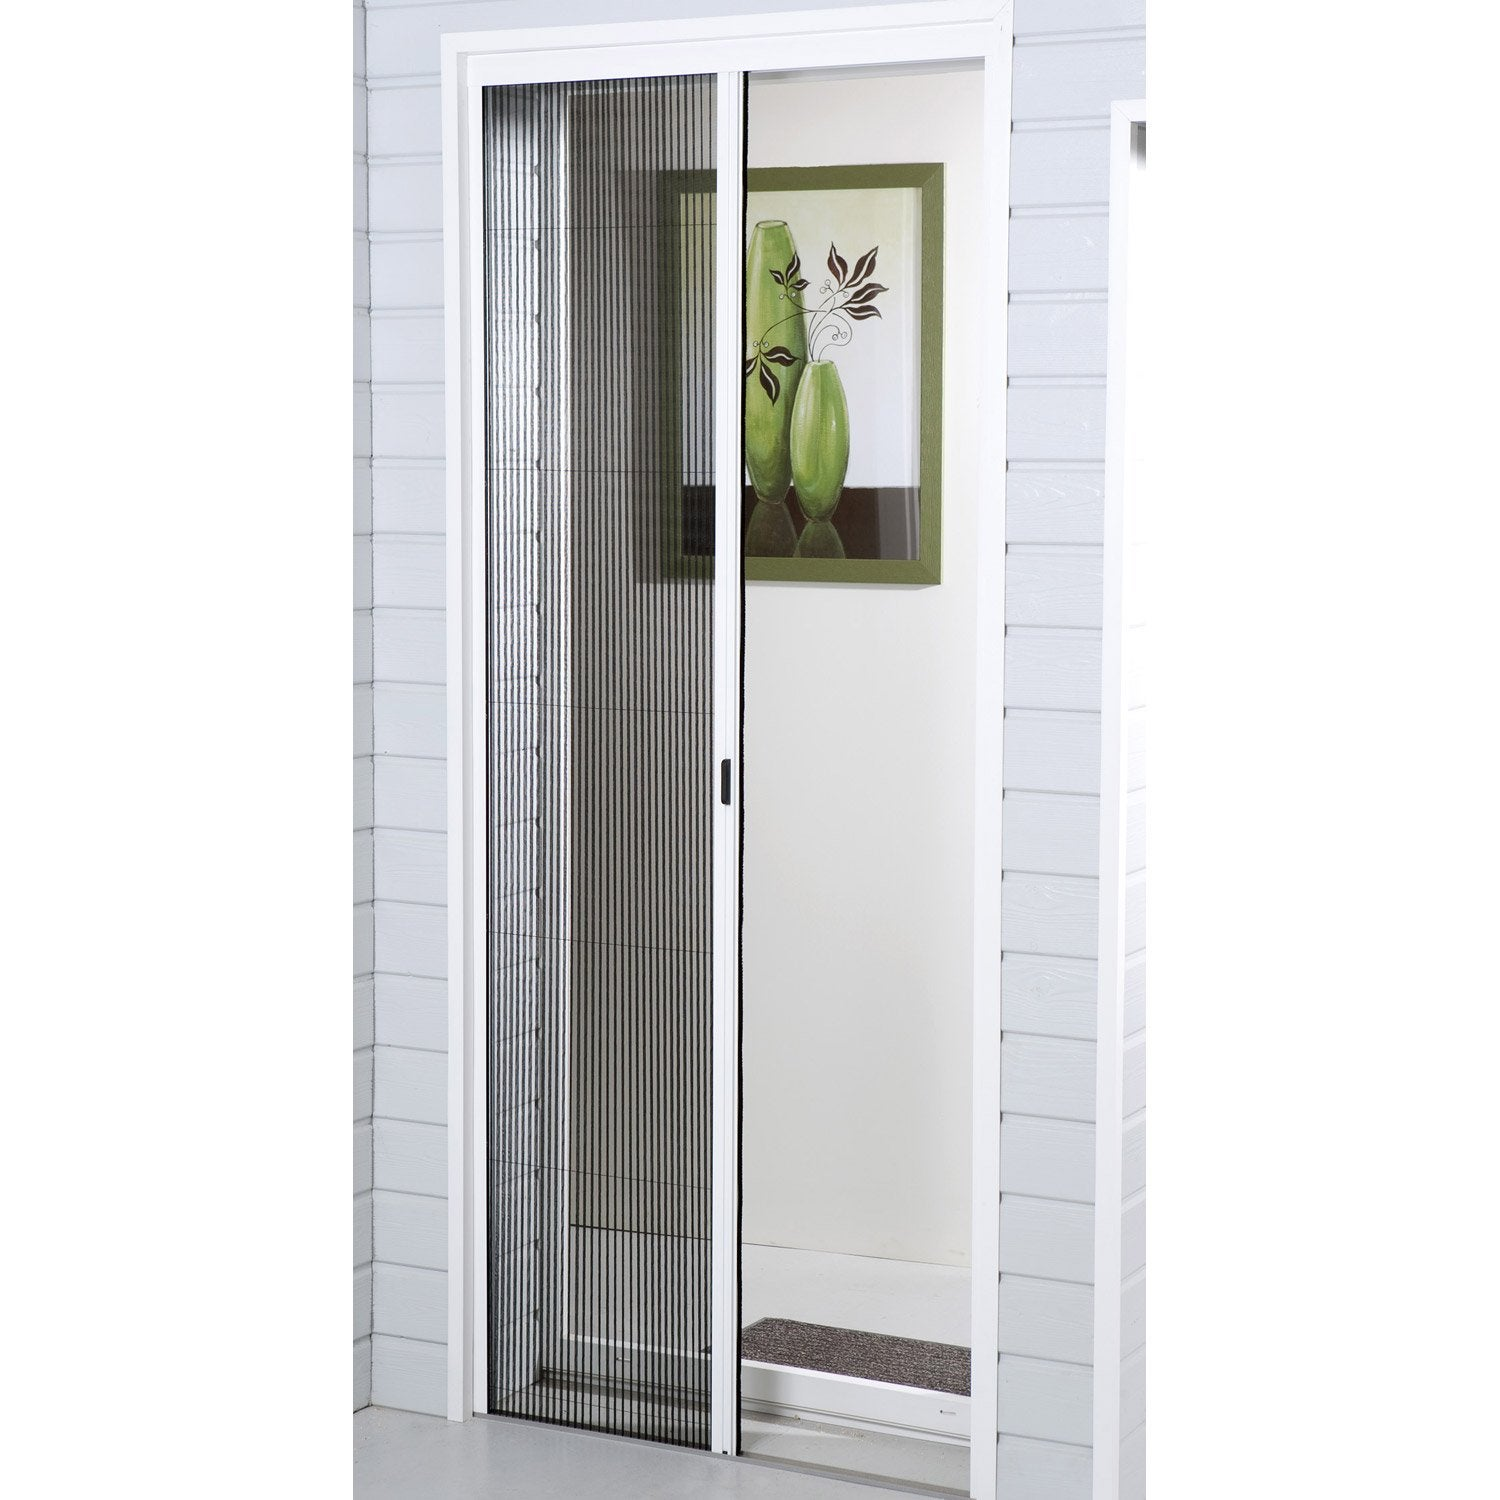 Moustiquaire porte fen tre pliss e moustikit 230x140 cm for Moustiquaires fenetre